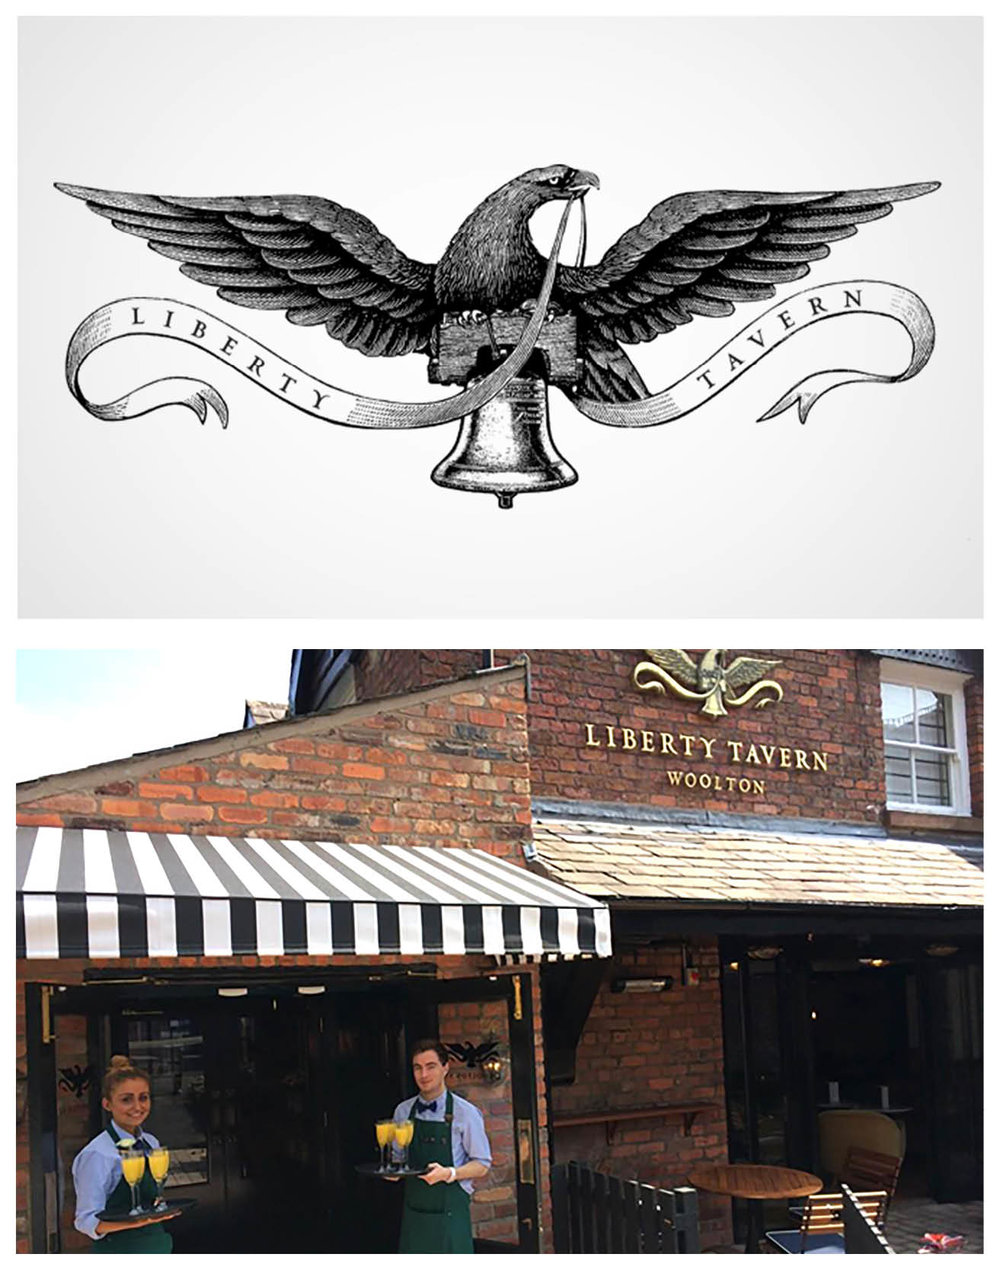 Liberty-Tavern-Image-Layout.jpg